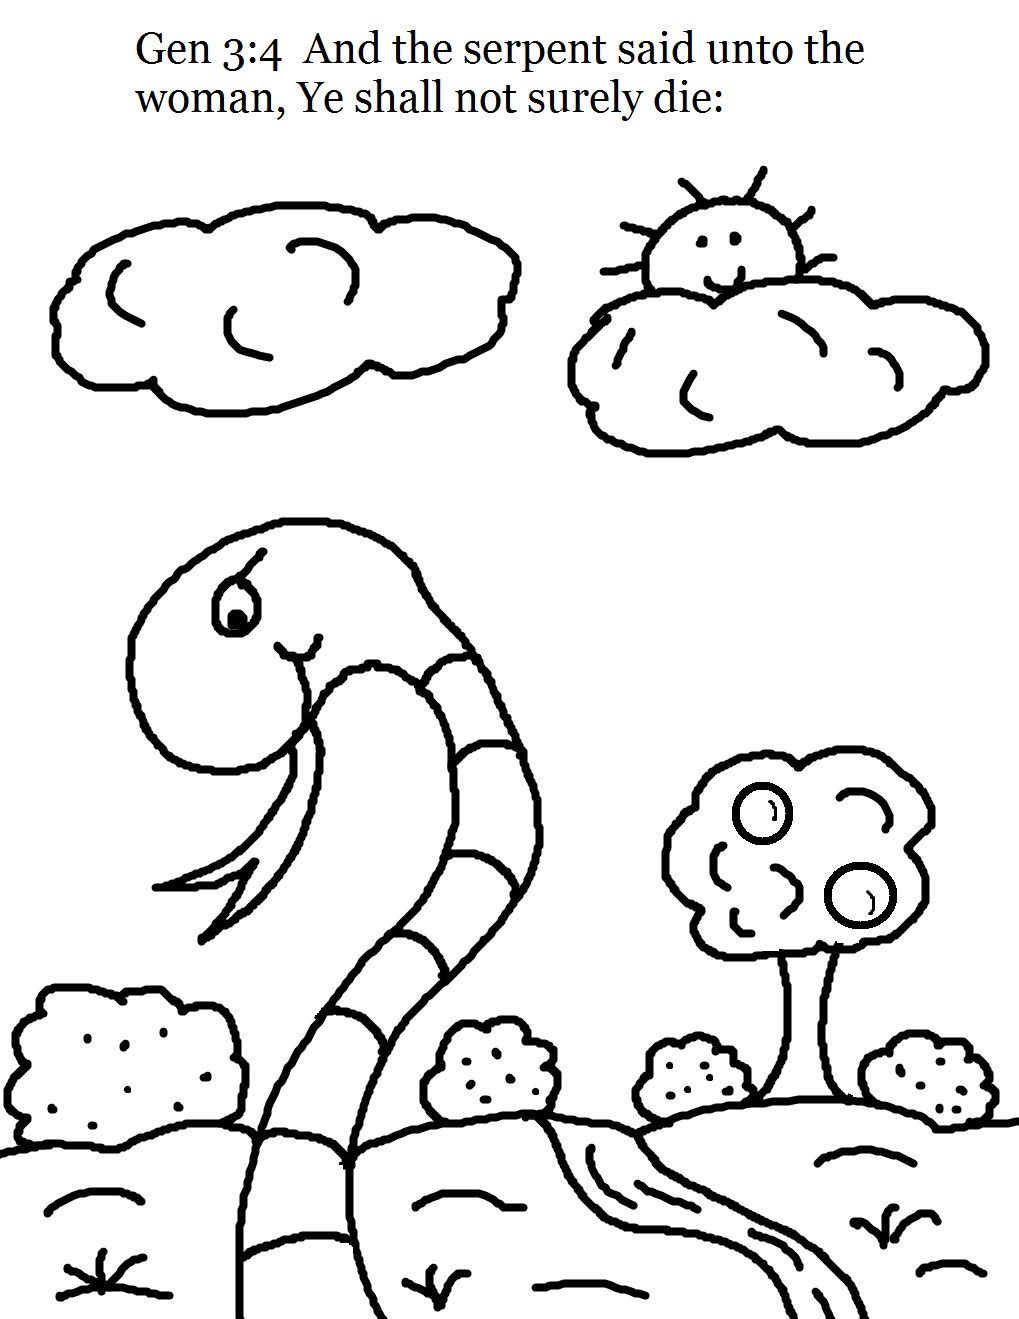 Printable coloring pages adam and eve - Coloring Pages For Children Is A Wonderful Activity That Encourages Children To Think In A Creative Adam And Evecoloring